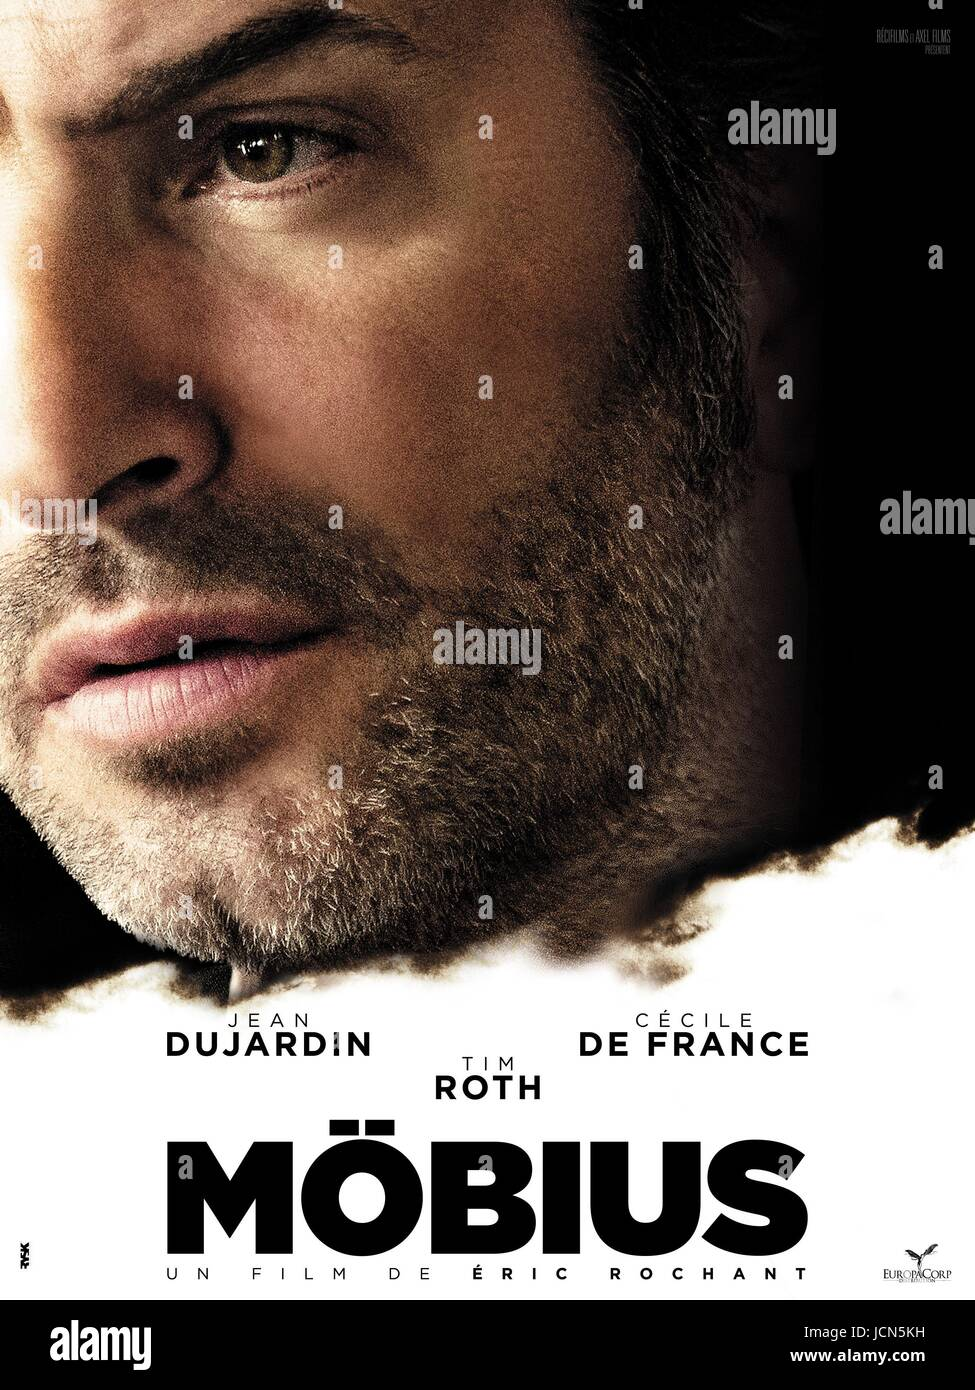 Mobius Movie High Resolution Stock Photography and Images - Alamy